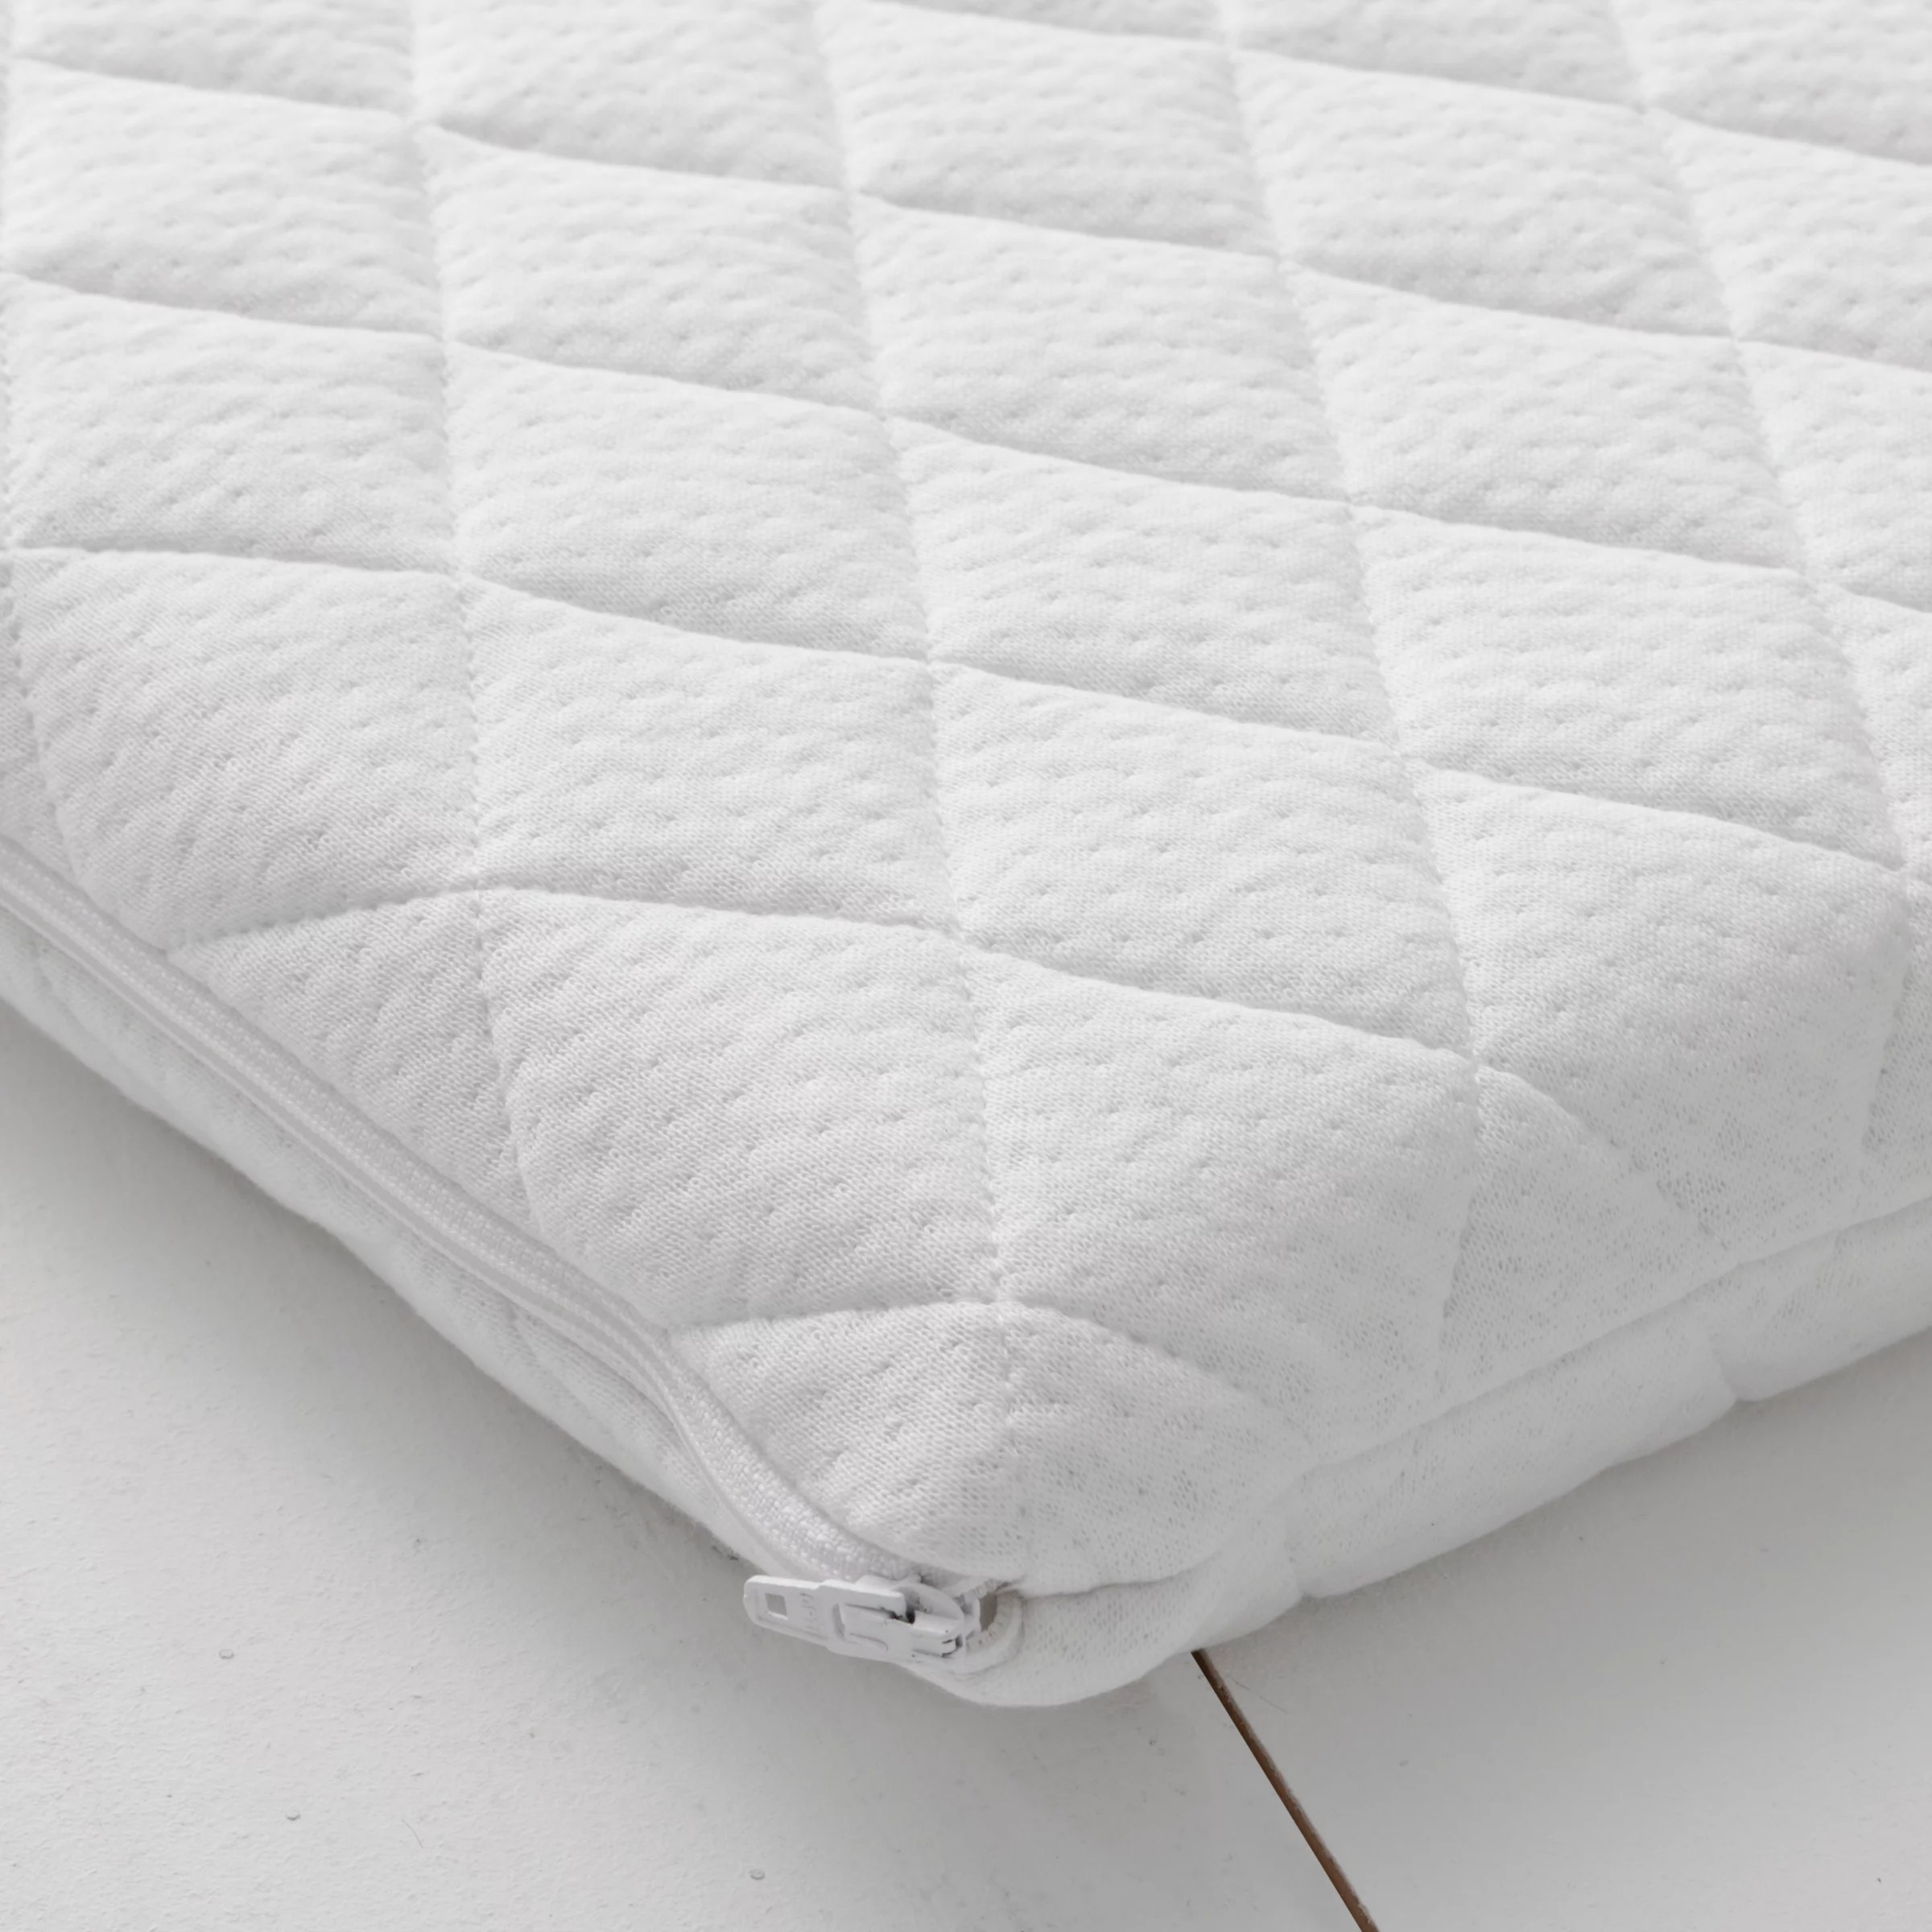 Cot Mattress 170 X 40 John Lewis Premium Foam Crib Mattress 89 X 38cm At John Lewis